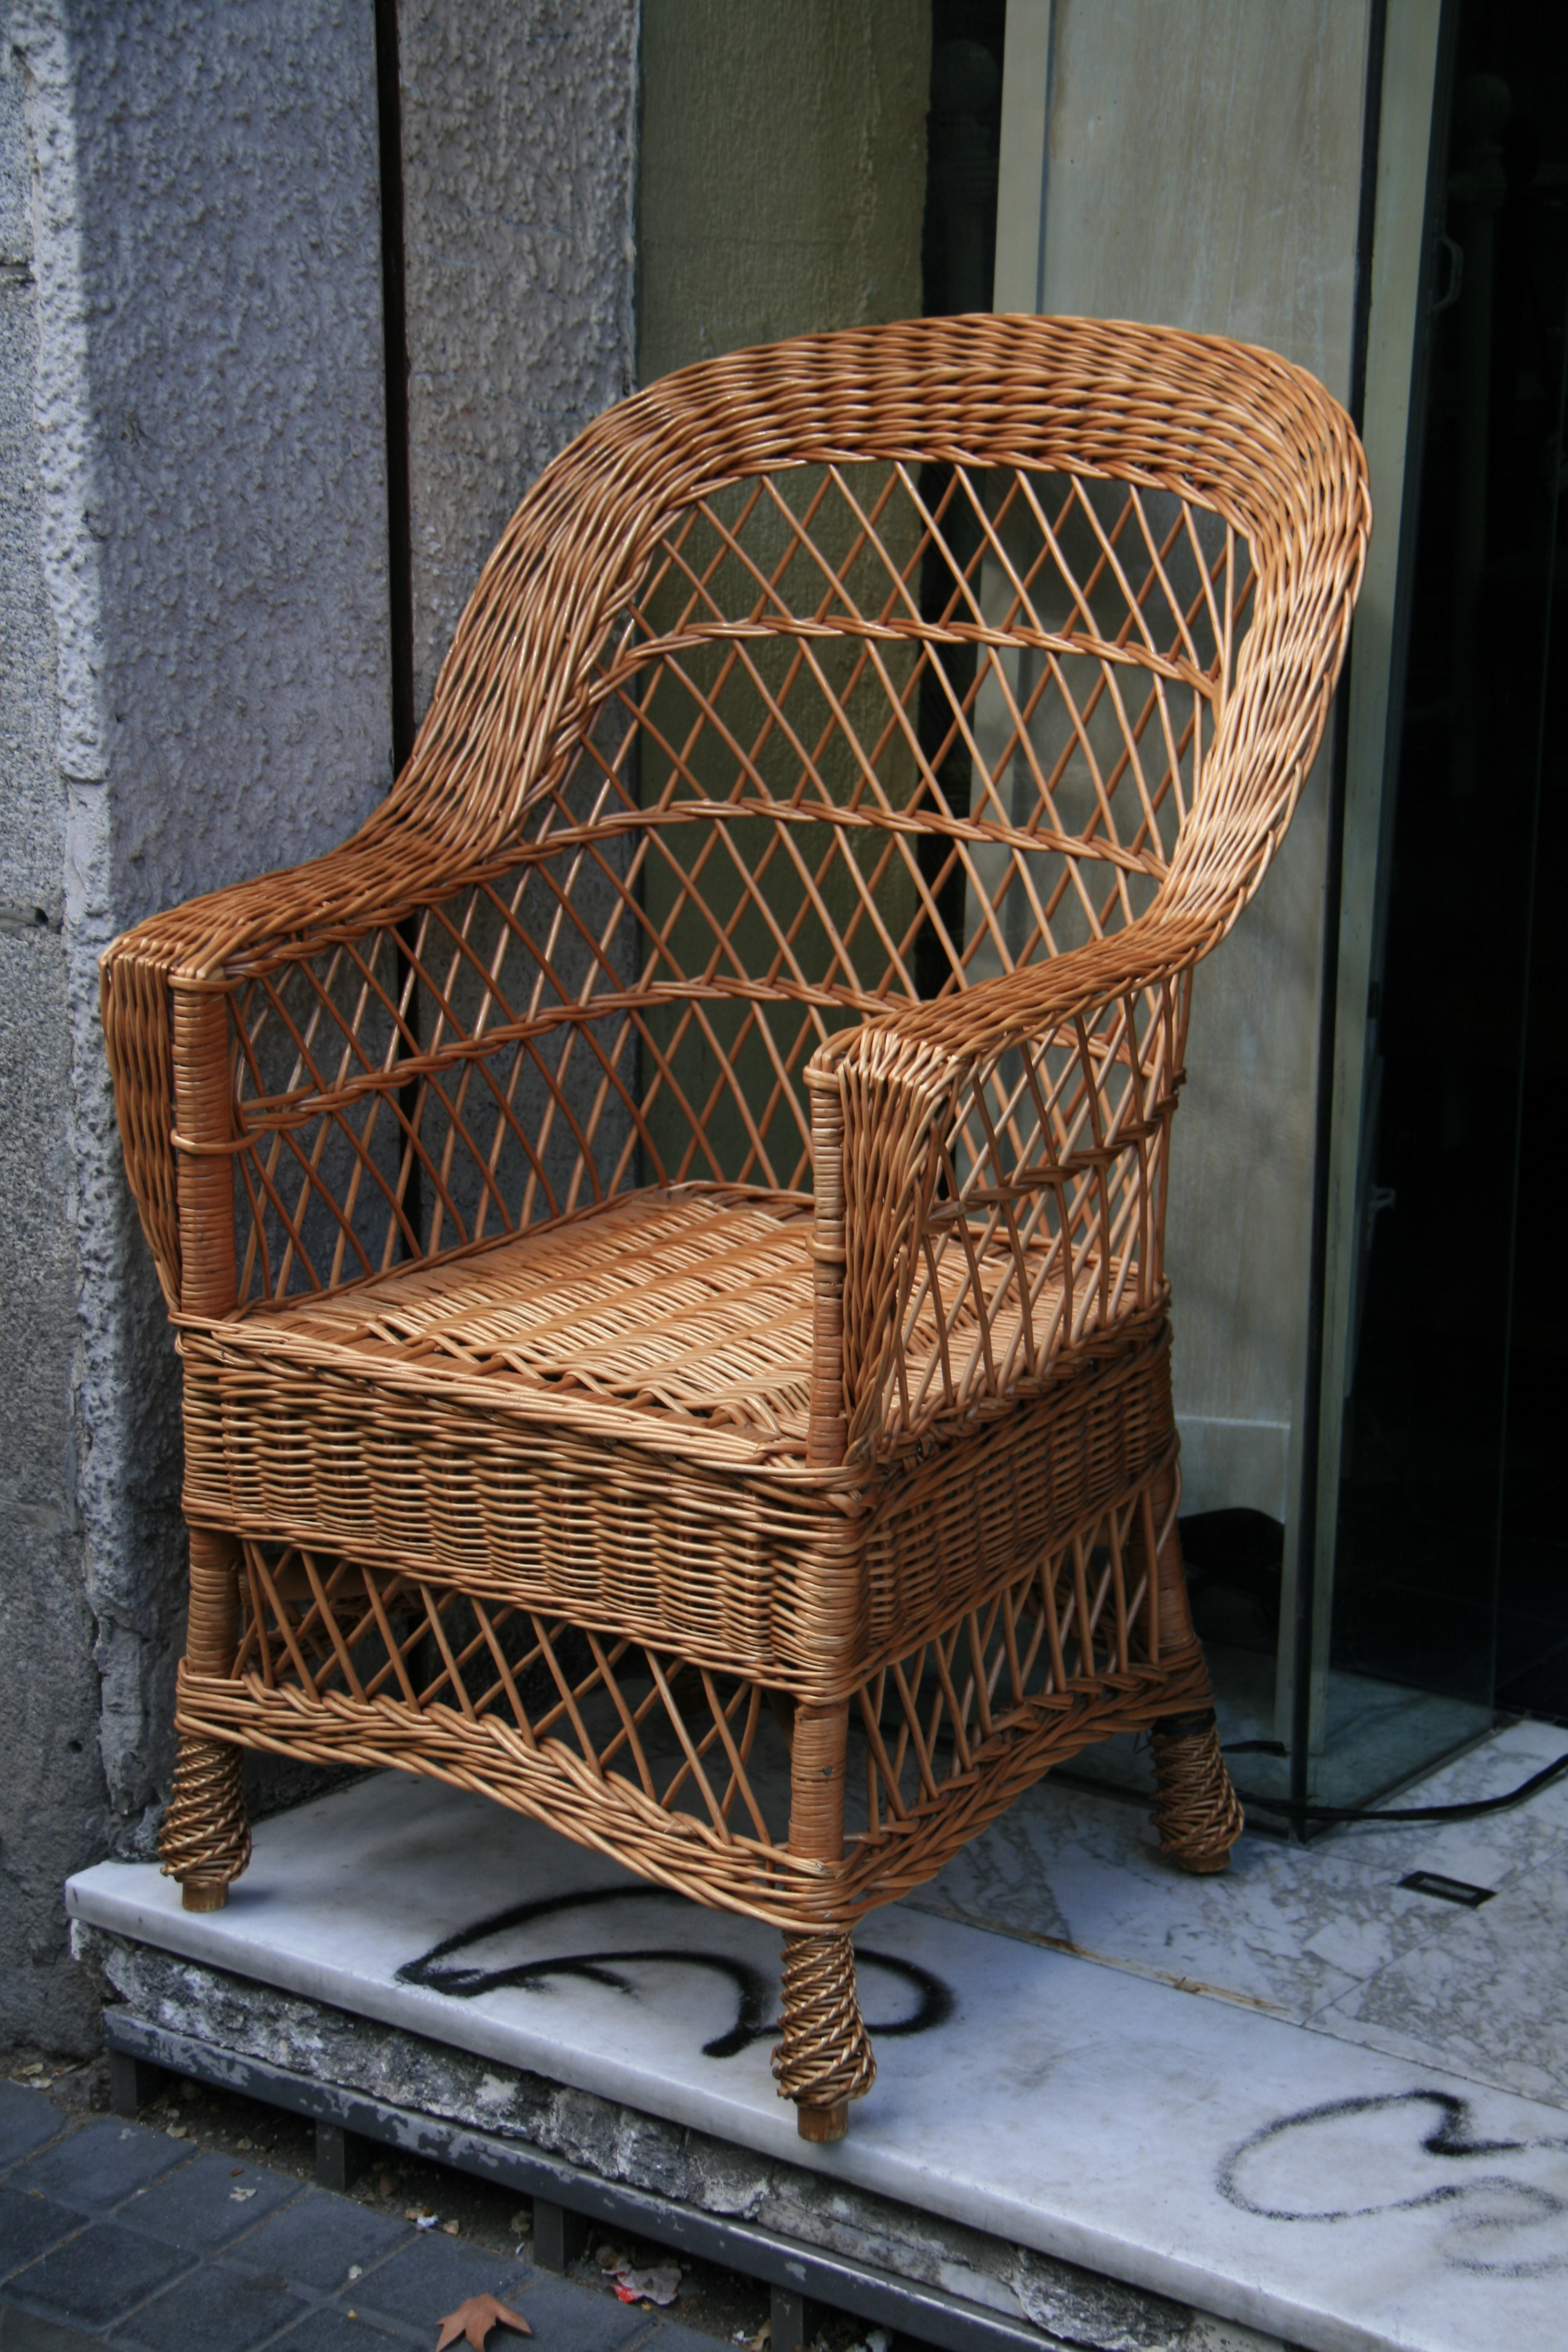 Empty wicker chair